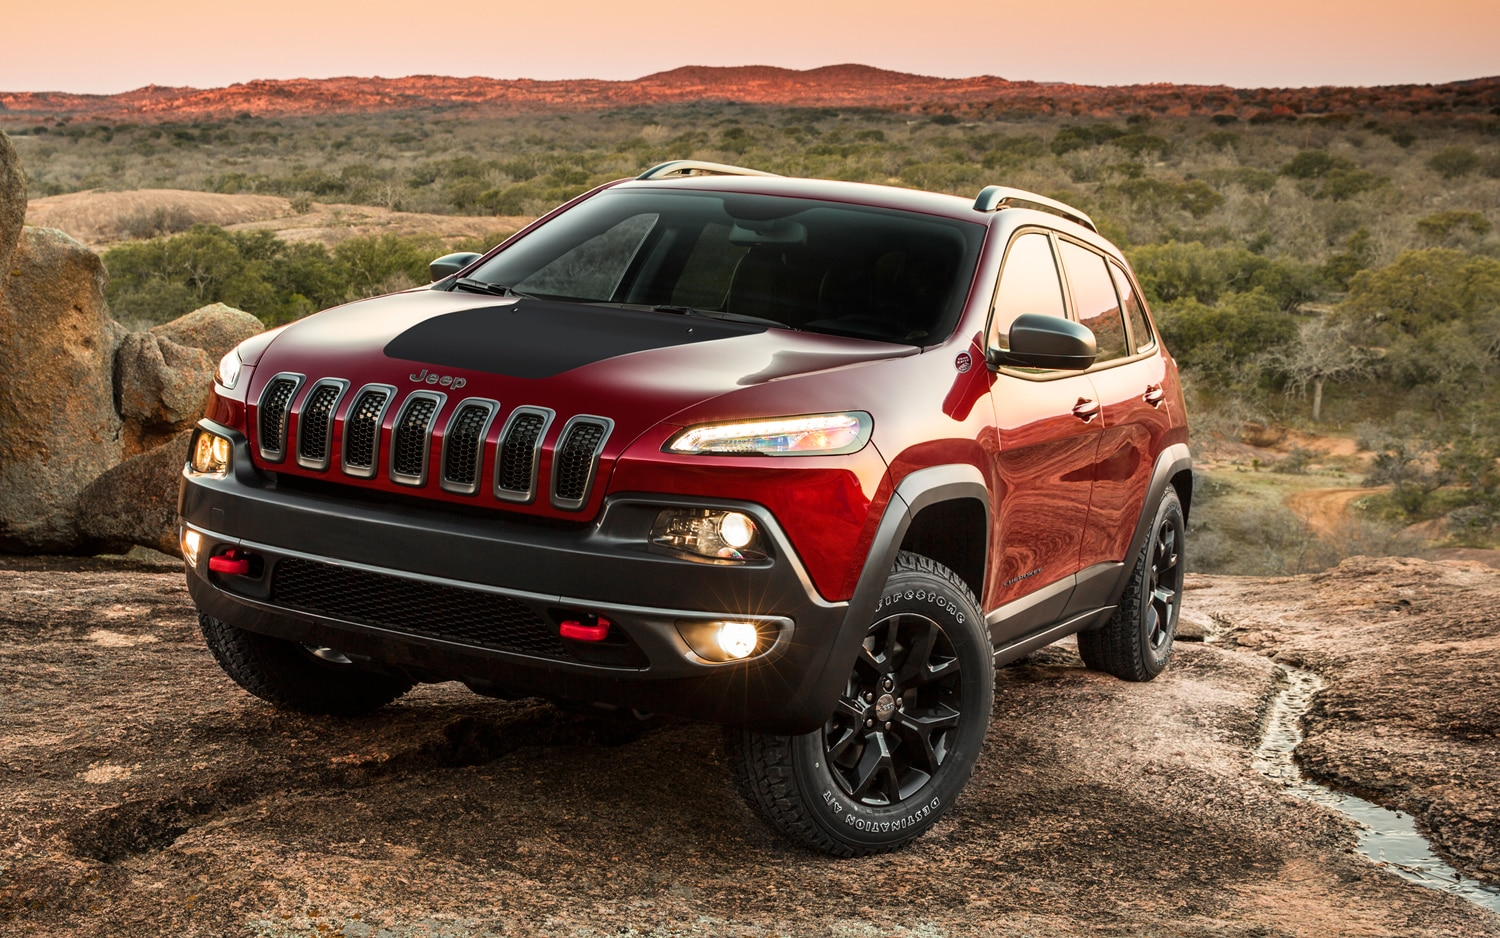 2014 Jeep Cherokee Trailhawk front three quarters view